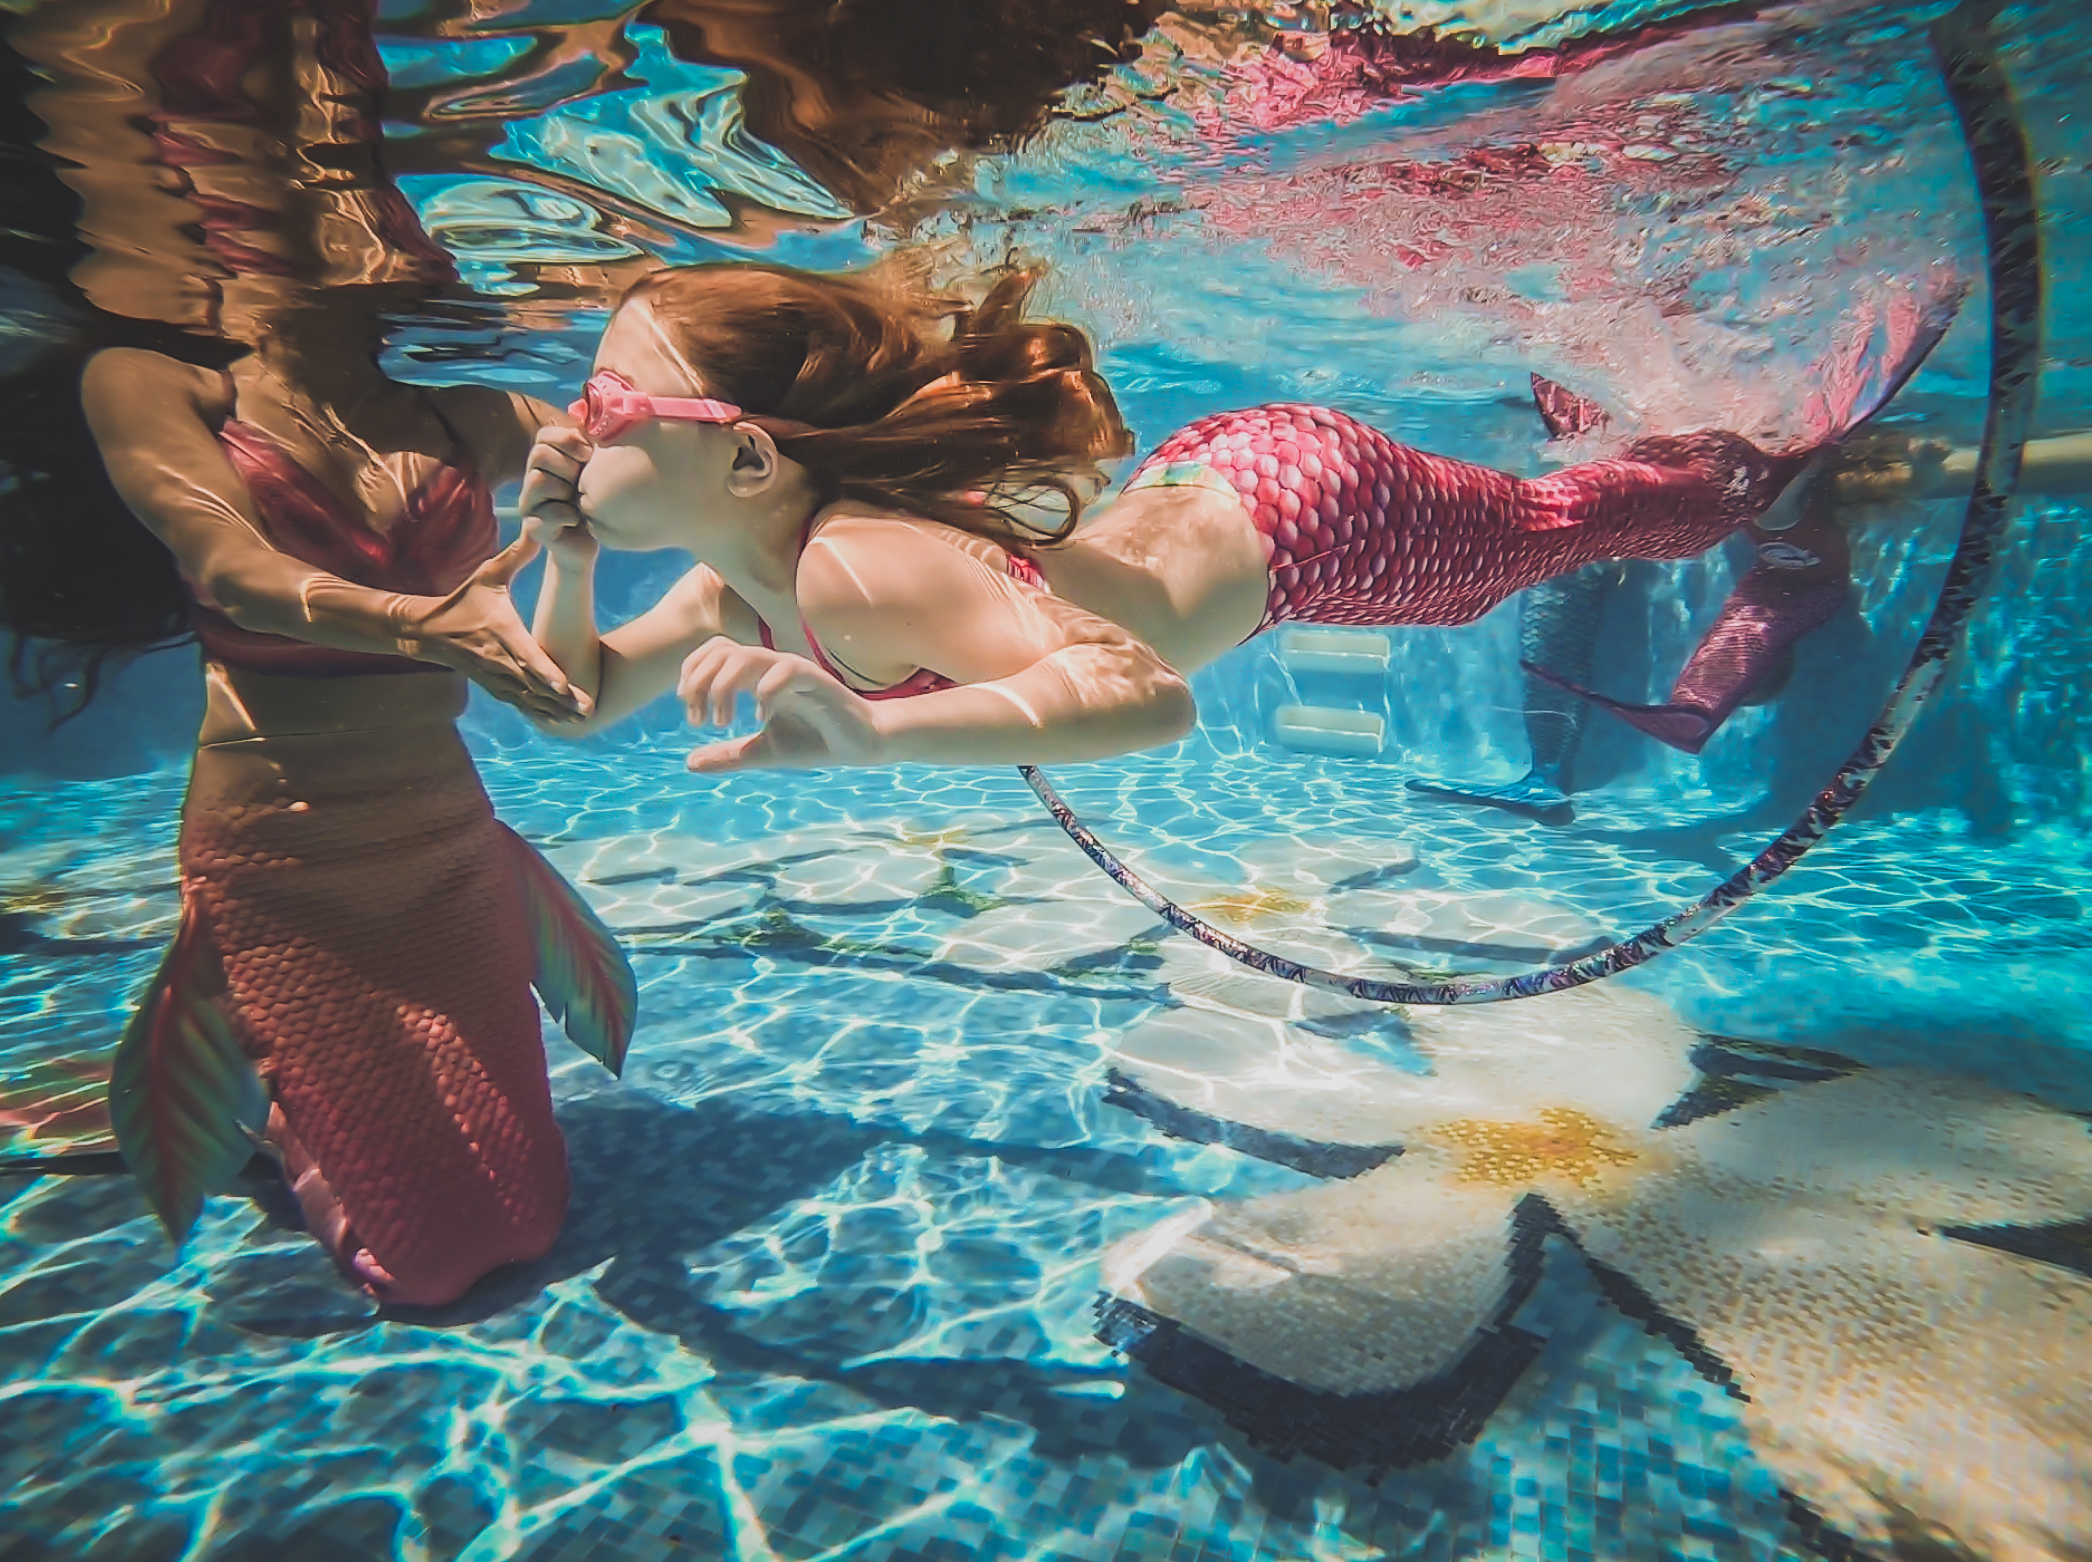 performing our Mermaid University class at the world famous fairmont kea lani resort in wailea